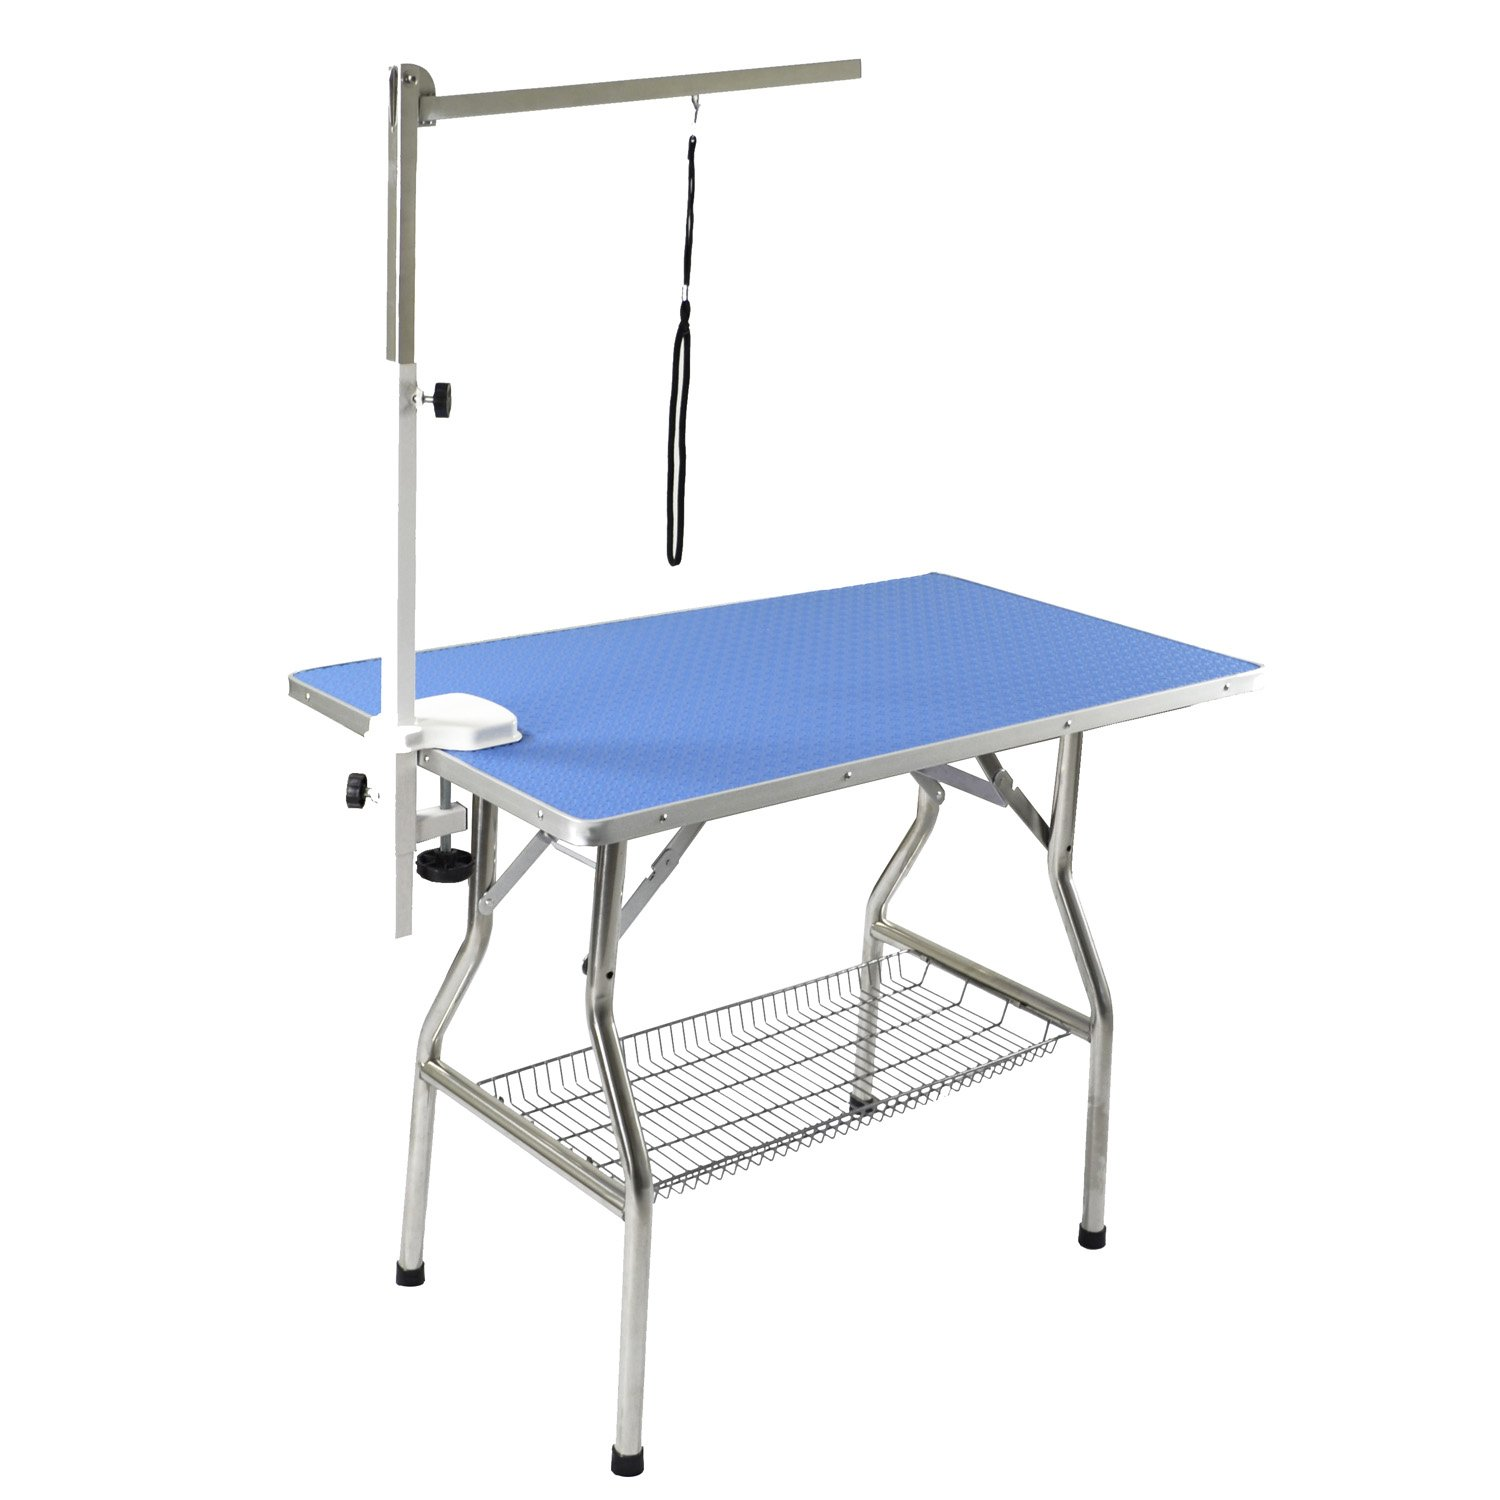 Flying Pig 32'' Small Size Heavy Duty Stainless Steel Frame Foldable Dog Pet Grooming Table (32''x21'', Blue)